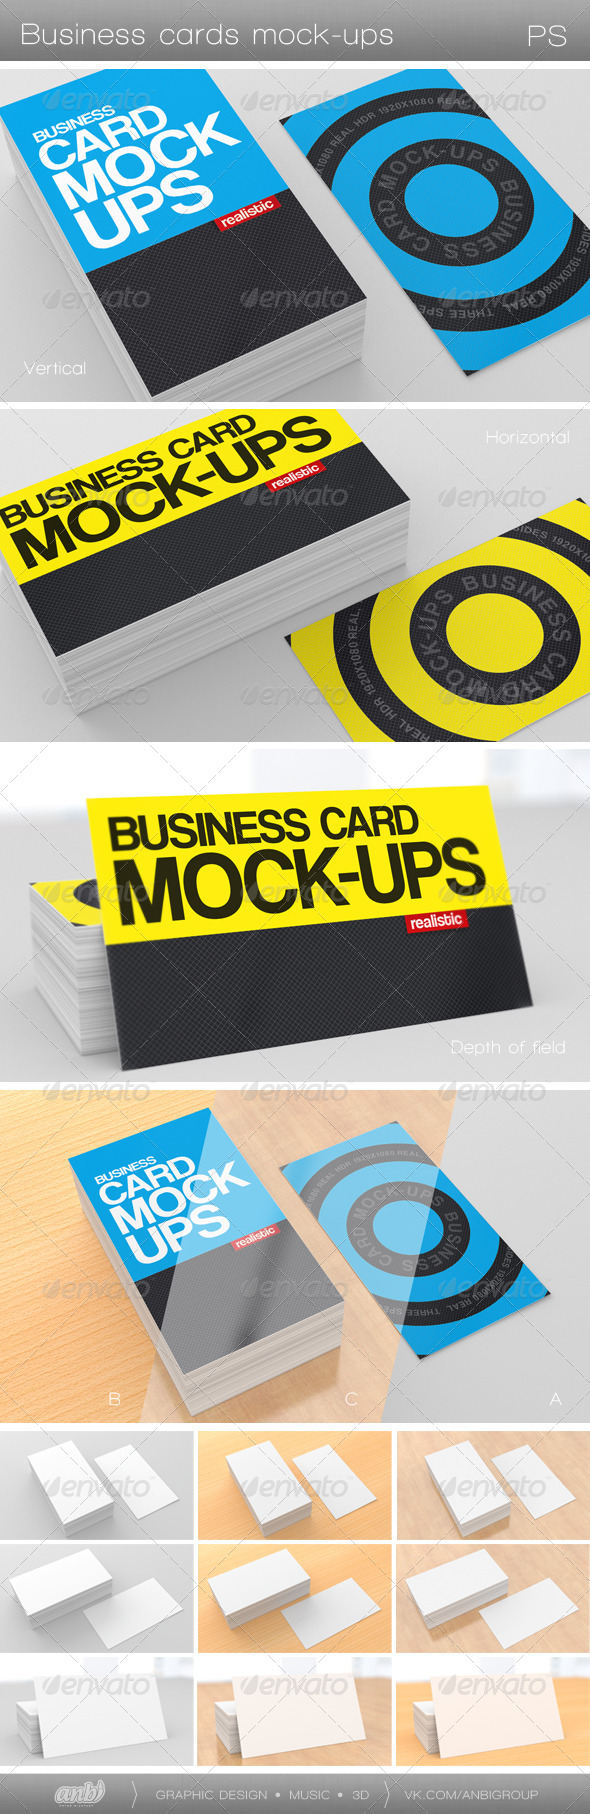 GraphicRiver Business Card Mock-Ups 4465419